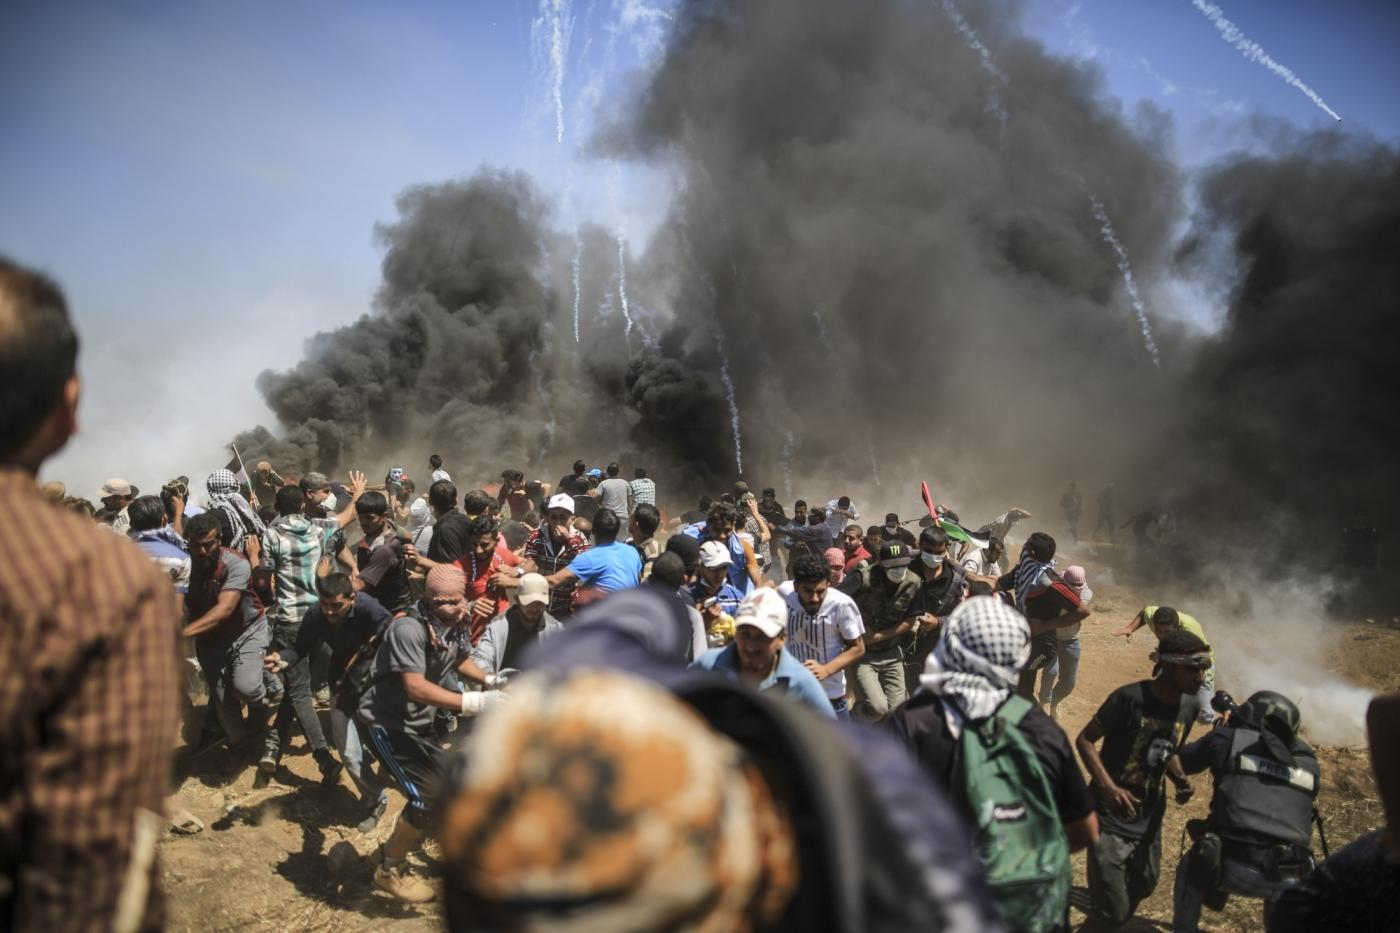 """GAZA, May 14, 2018 (Xinhua) -- Palestinian protesters run to take cover from tear gas fired by Israeli troops during clashes, ahead of the Nakba Day, or """"Day of Catastrophe,"""" near border east of Gaza city, on May 14, 2018. (Xinhua/Wissam Nassa/IANS) by ."""